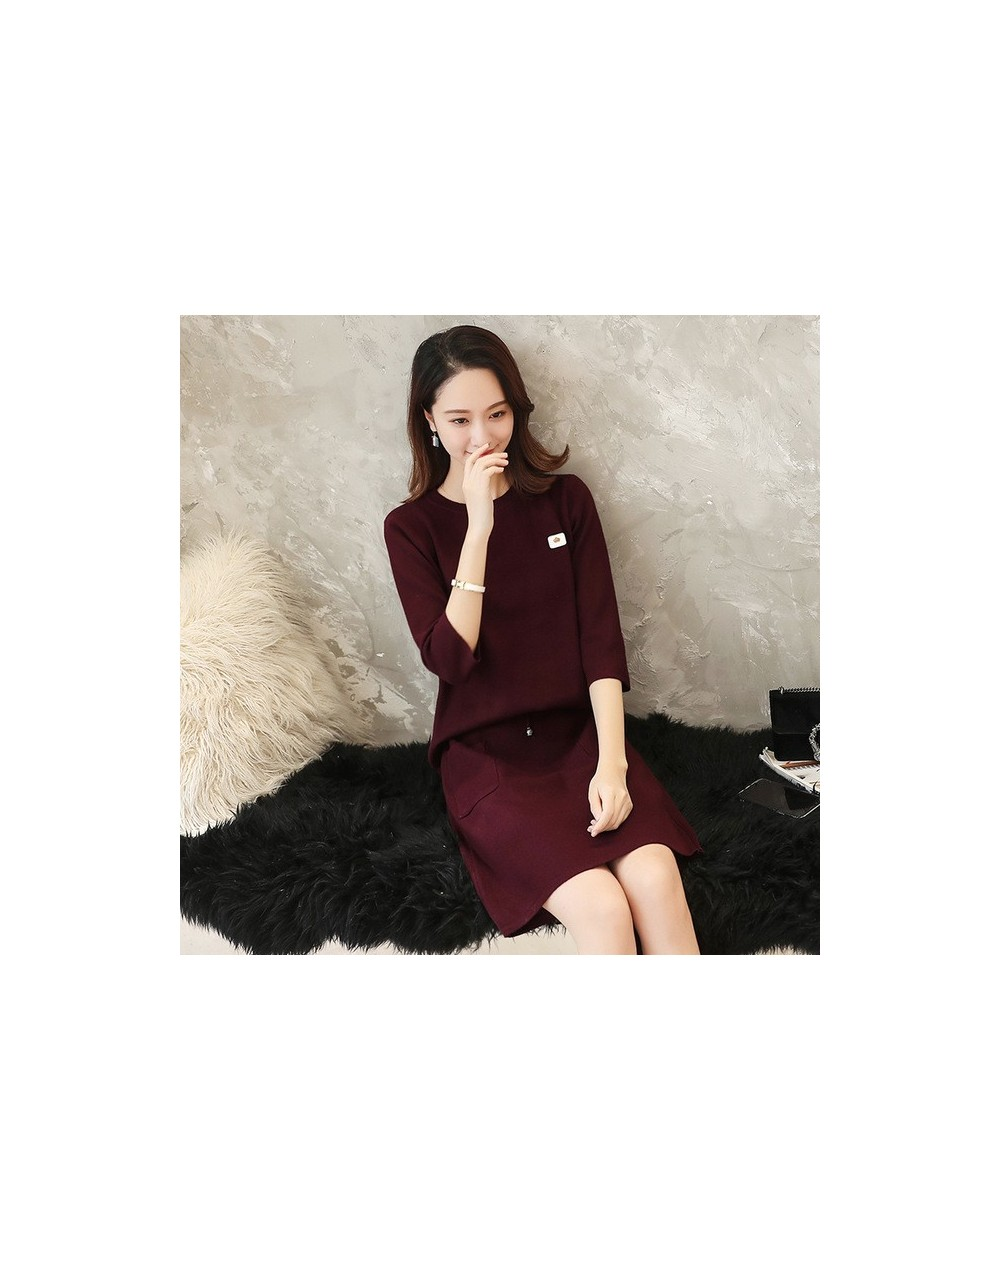 Sweaters Women's Style Spring 2019 New Slim Knitted Dress Dress Leisure Two-piece Long Sleeve Button Suit Skirt - see chart ...